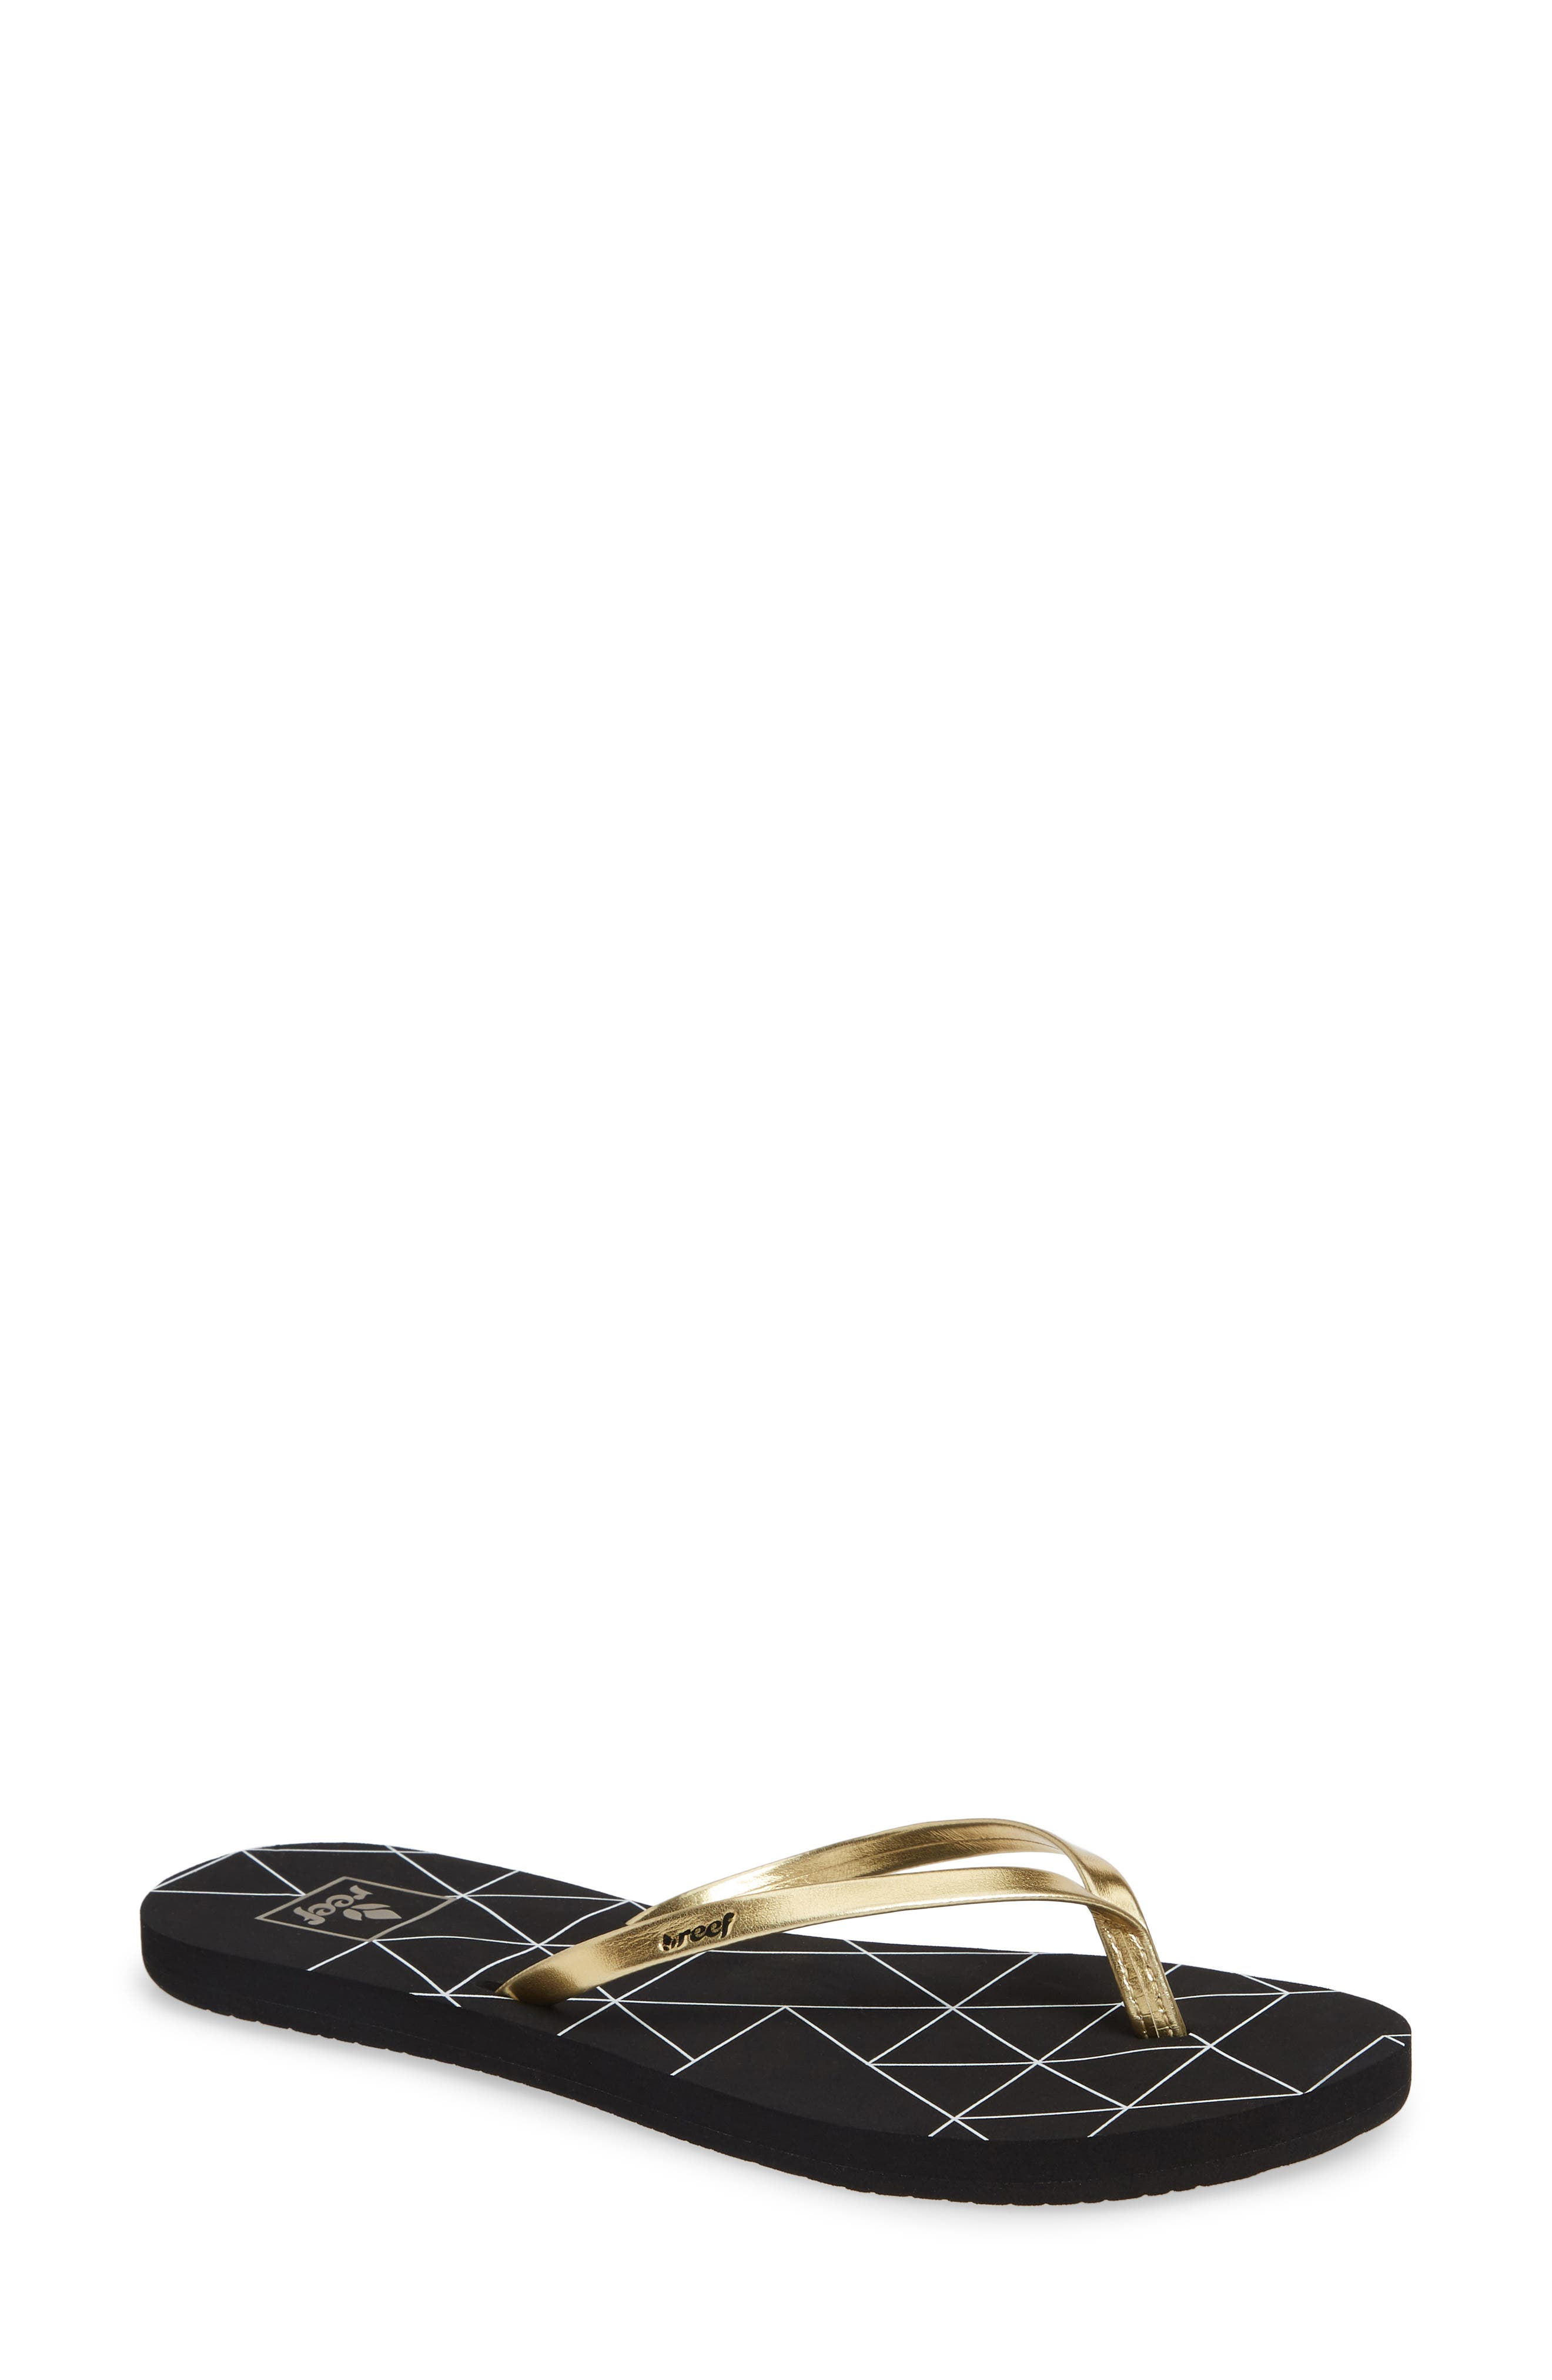 REEF Bliss-Full Flip Flop, Main, color, GOLD PYRAMIDS